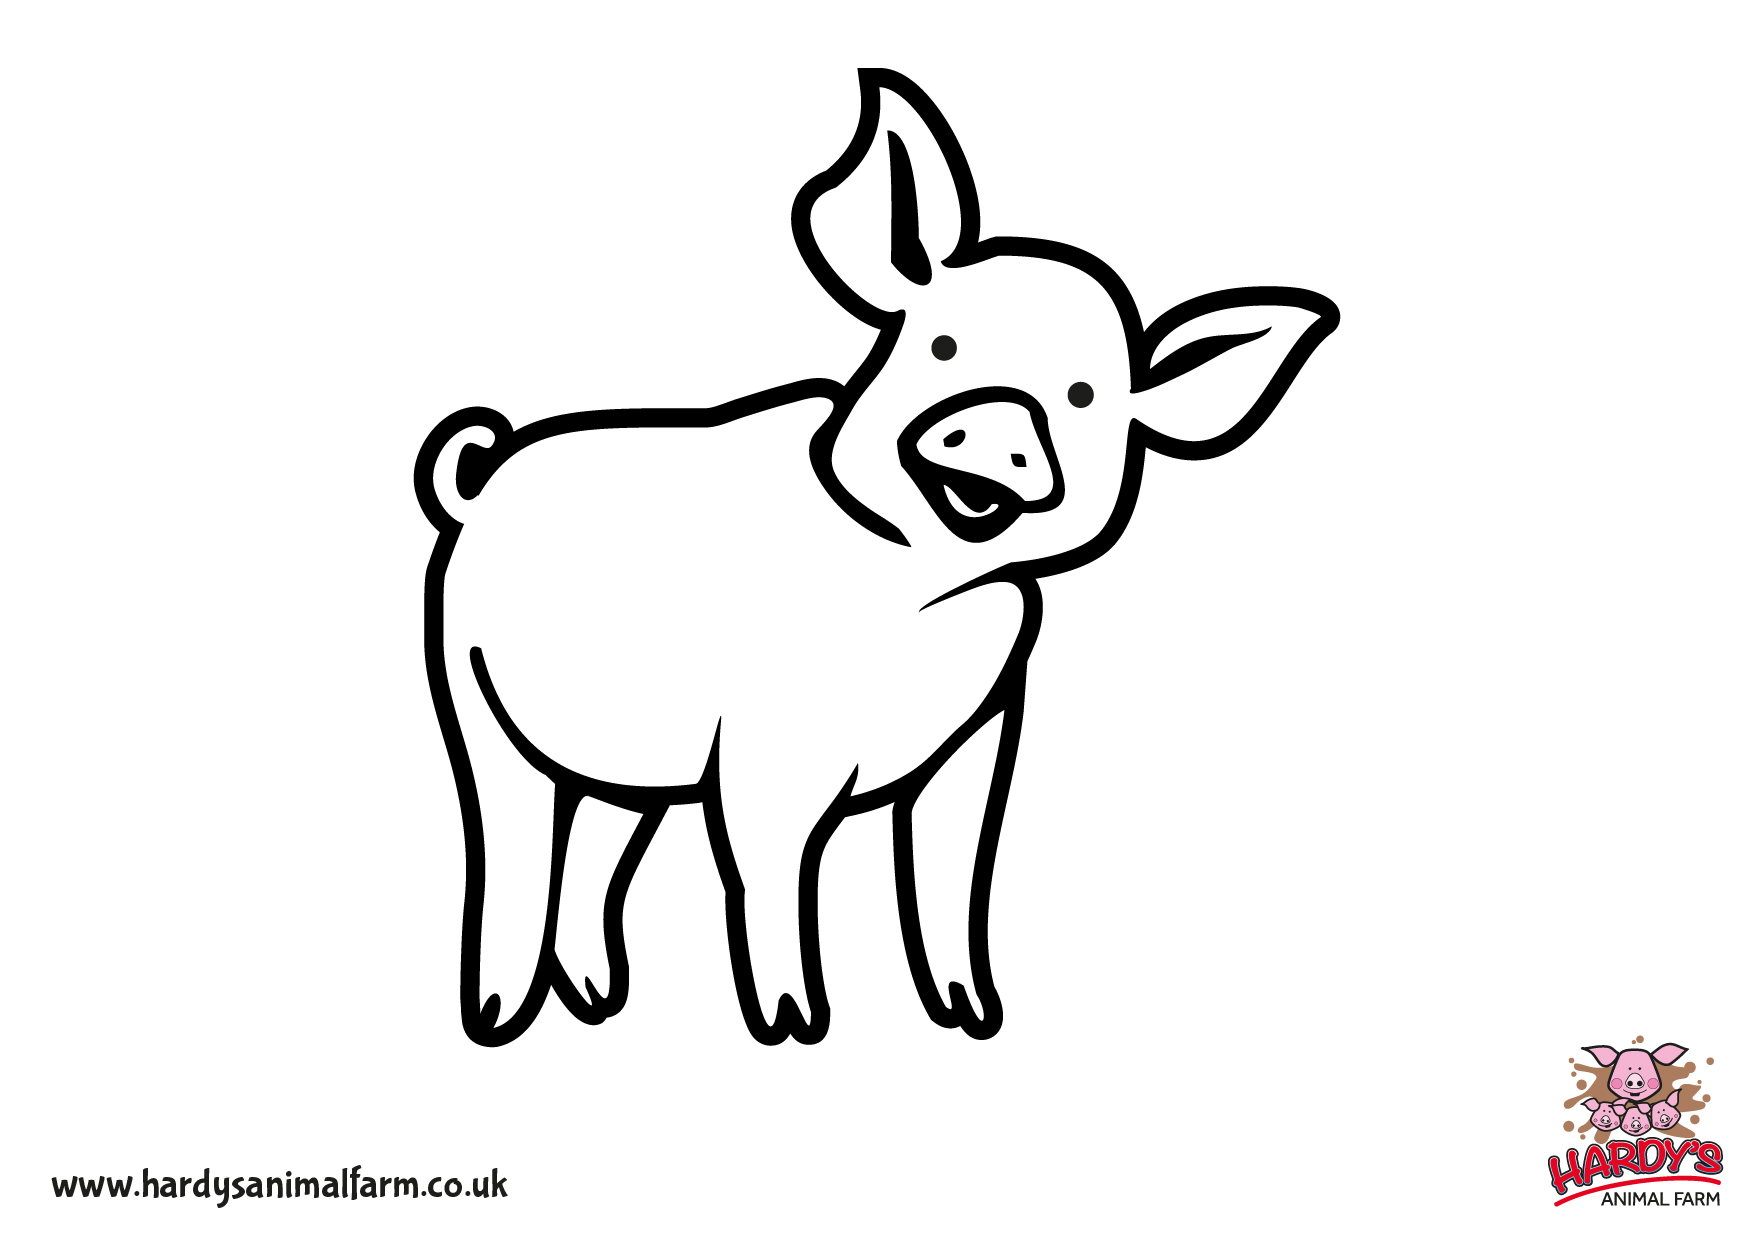 Colouring Pages - Hardys Animal Farm